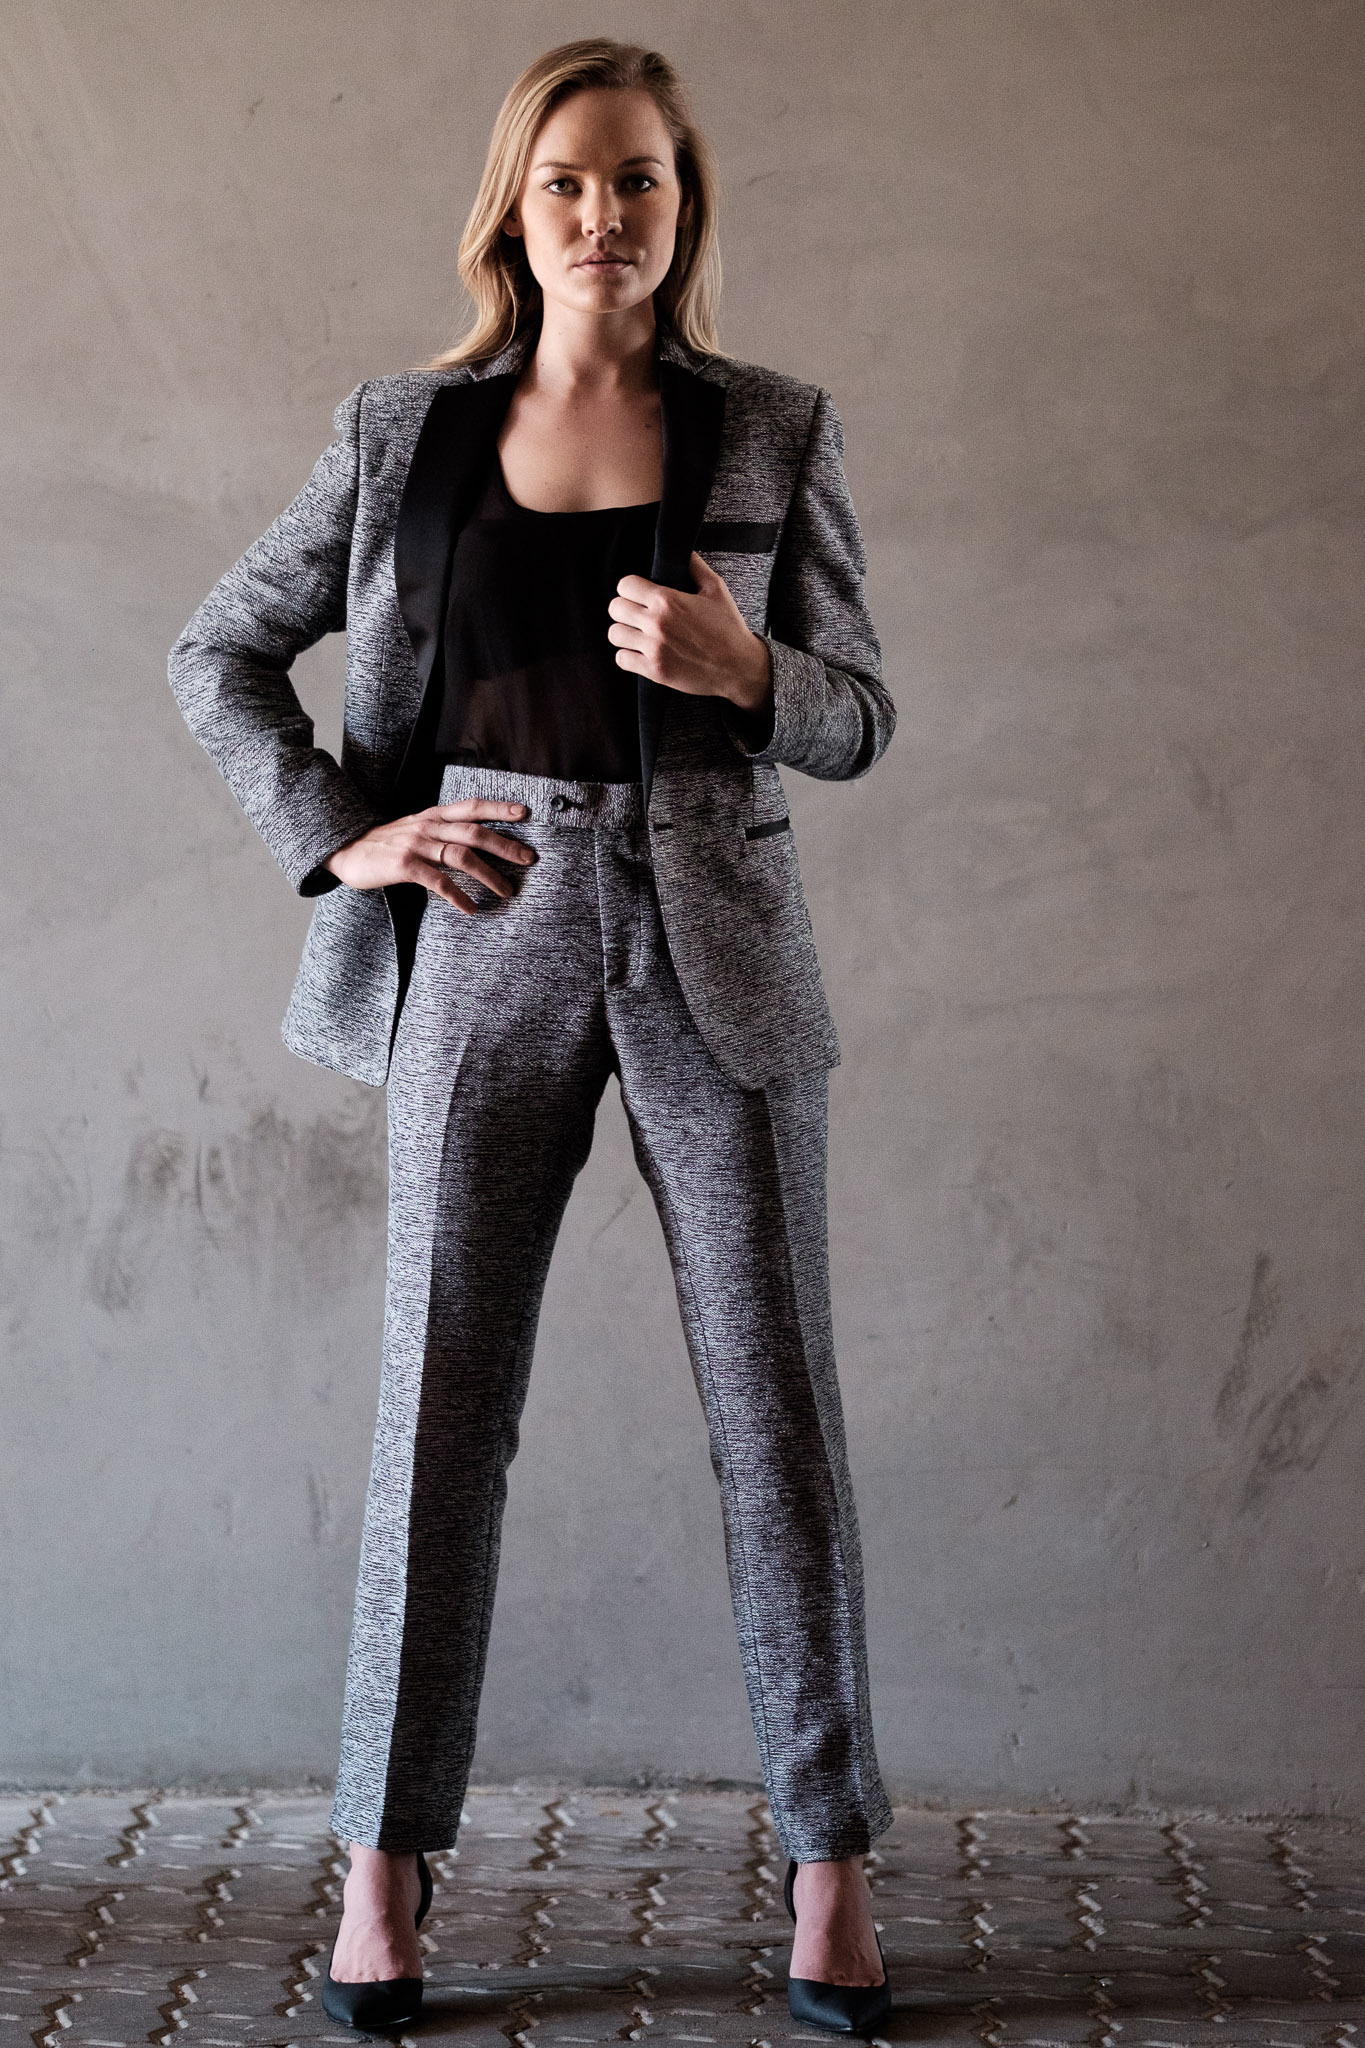 Suited for Her - Lifestyle - Cath Tatham Photography